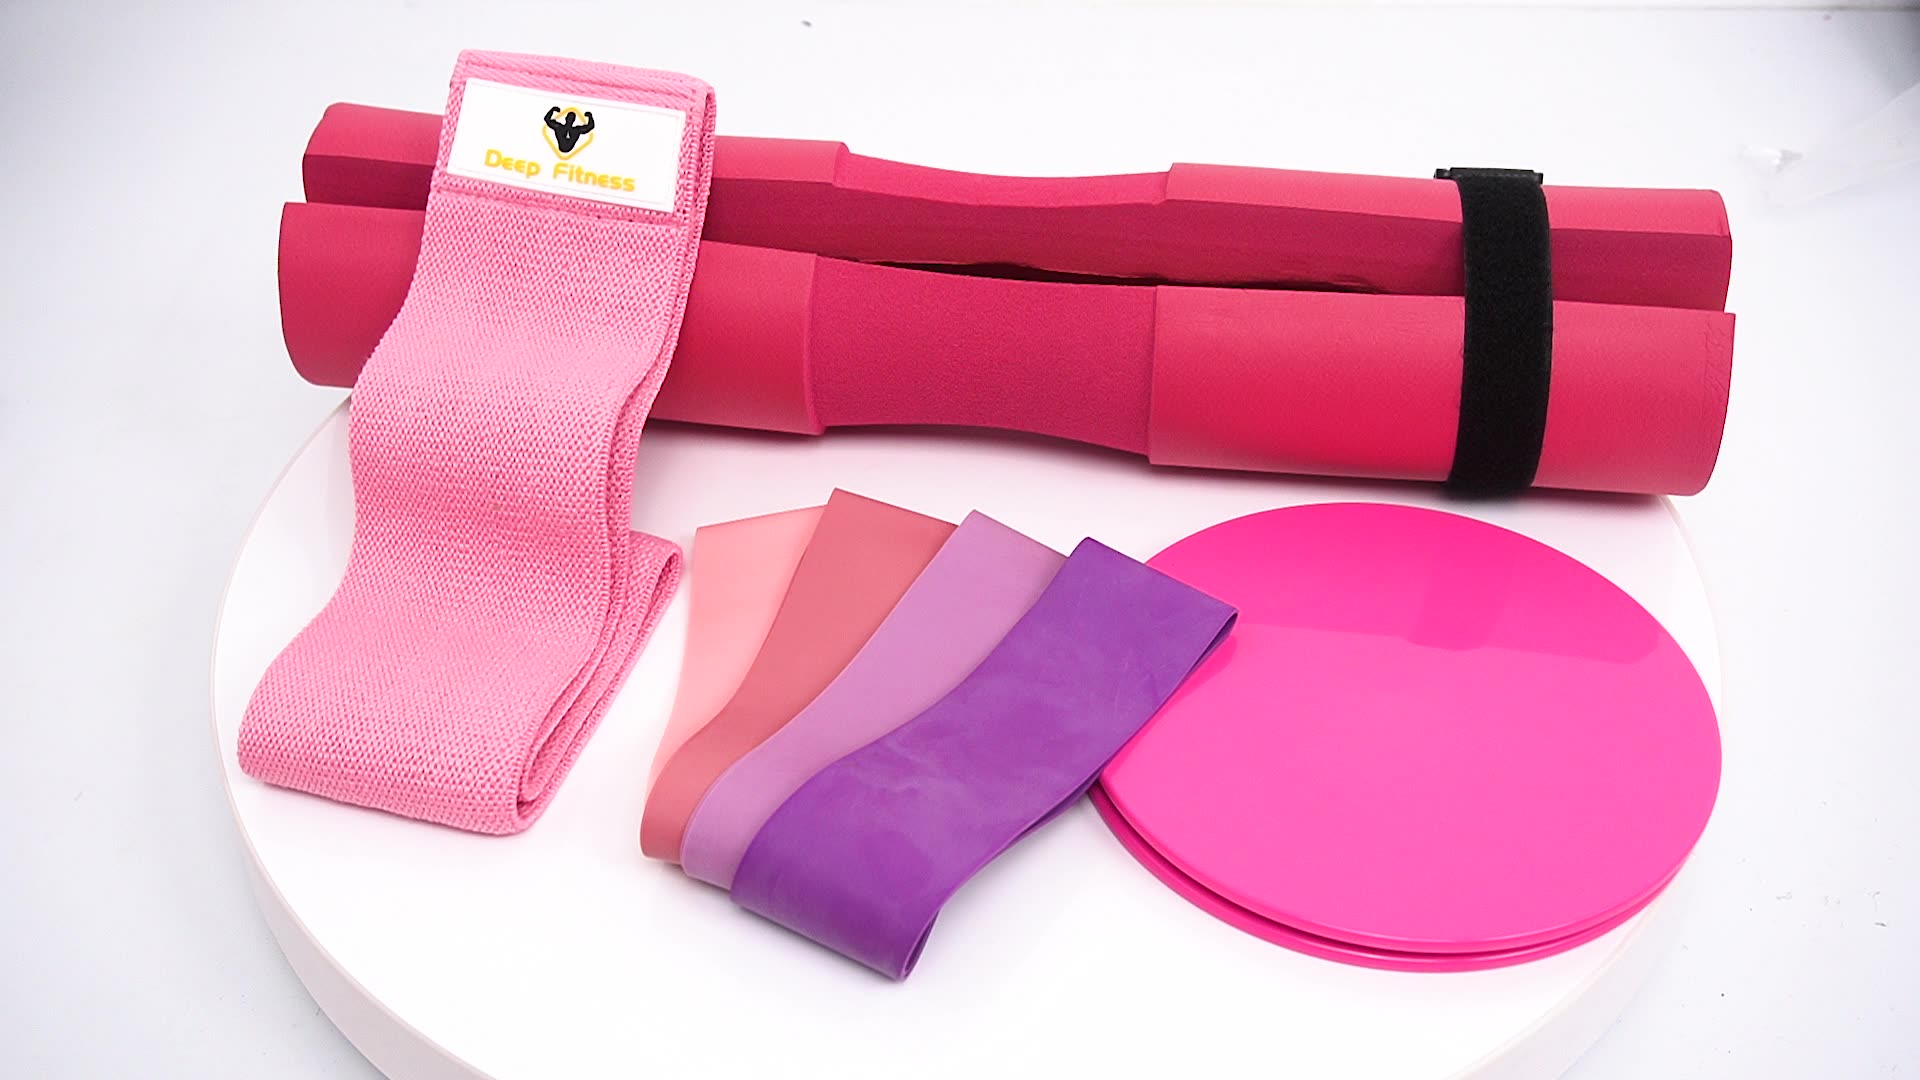 Custom printed Fabric exercise bands / Core Sliders Set Hip Circle band resistance Booty Bands